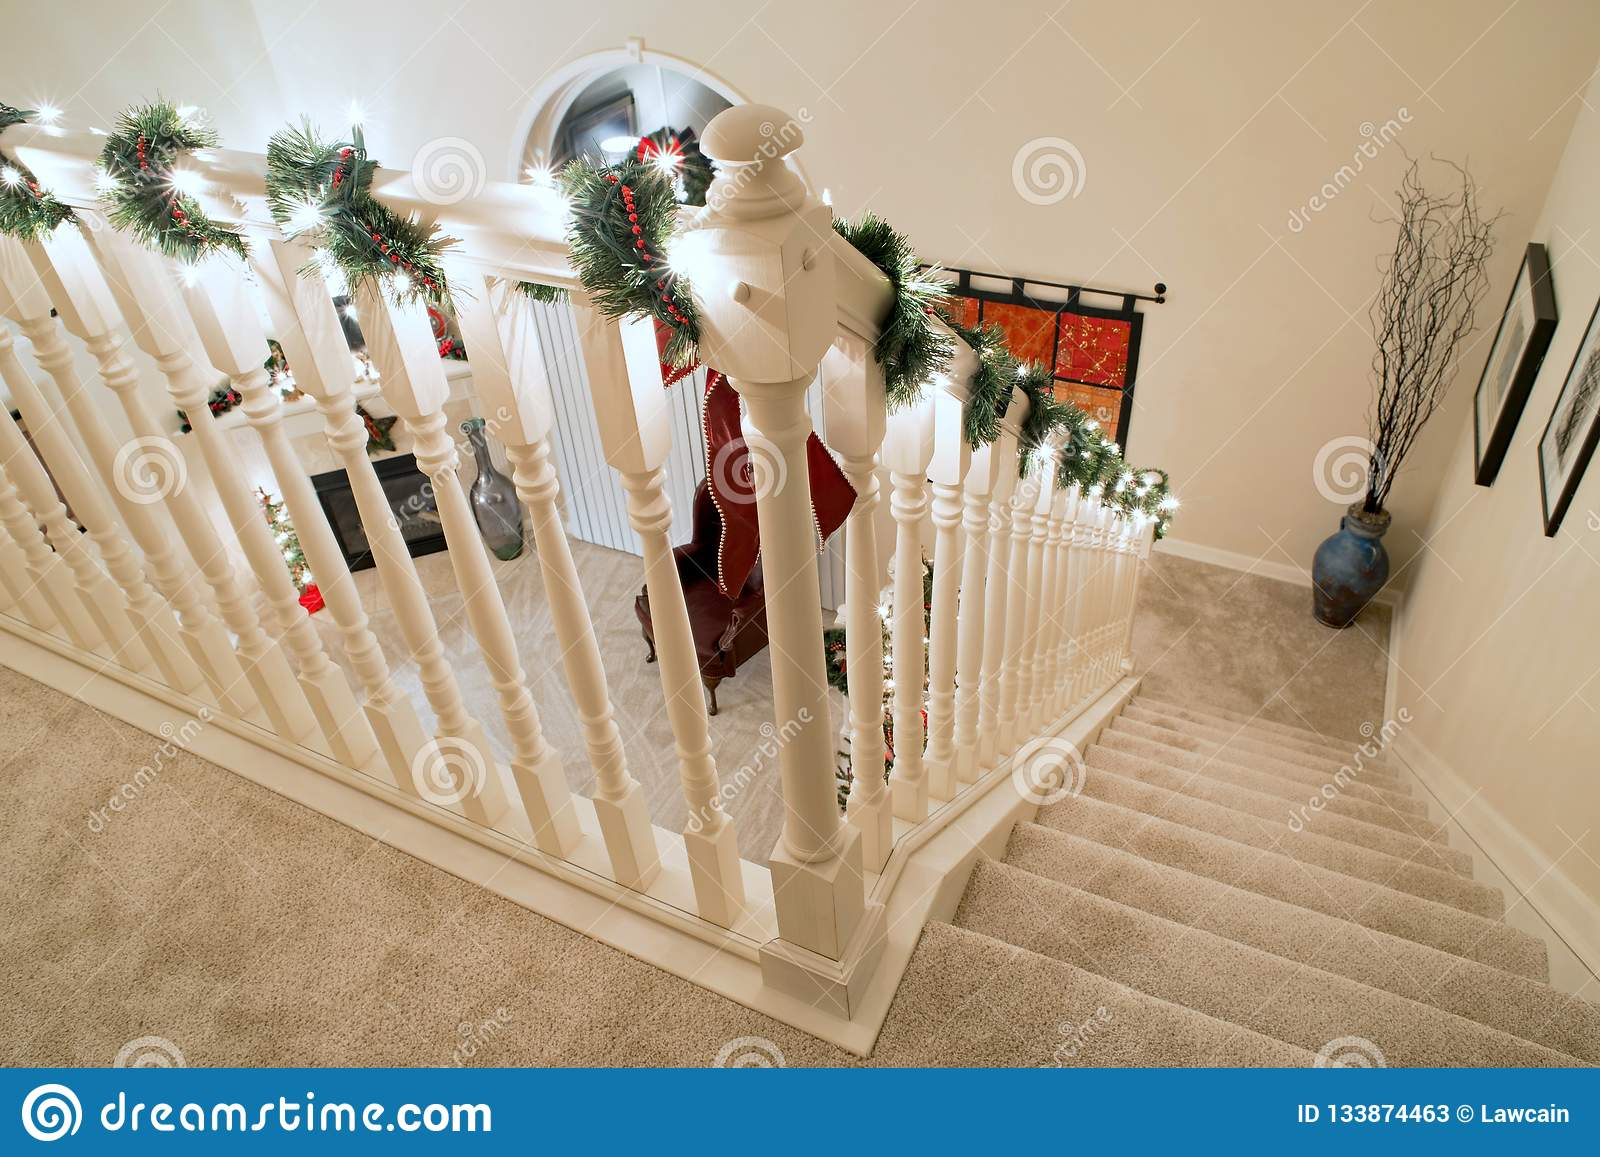 Picture of: Christmas Corner Banister Stairs Editorial Stock Photo Image Of House Home 133874463